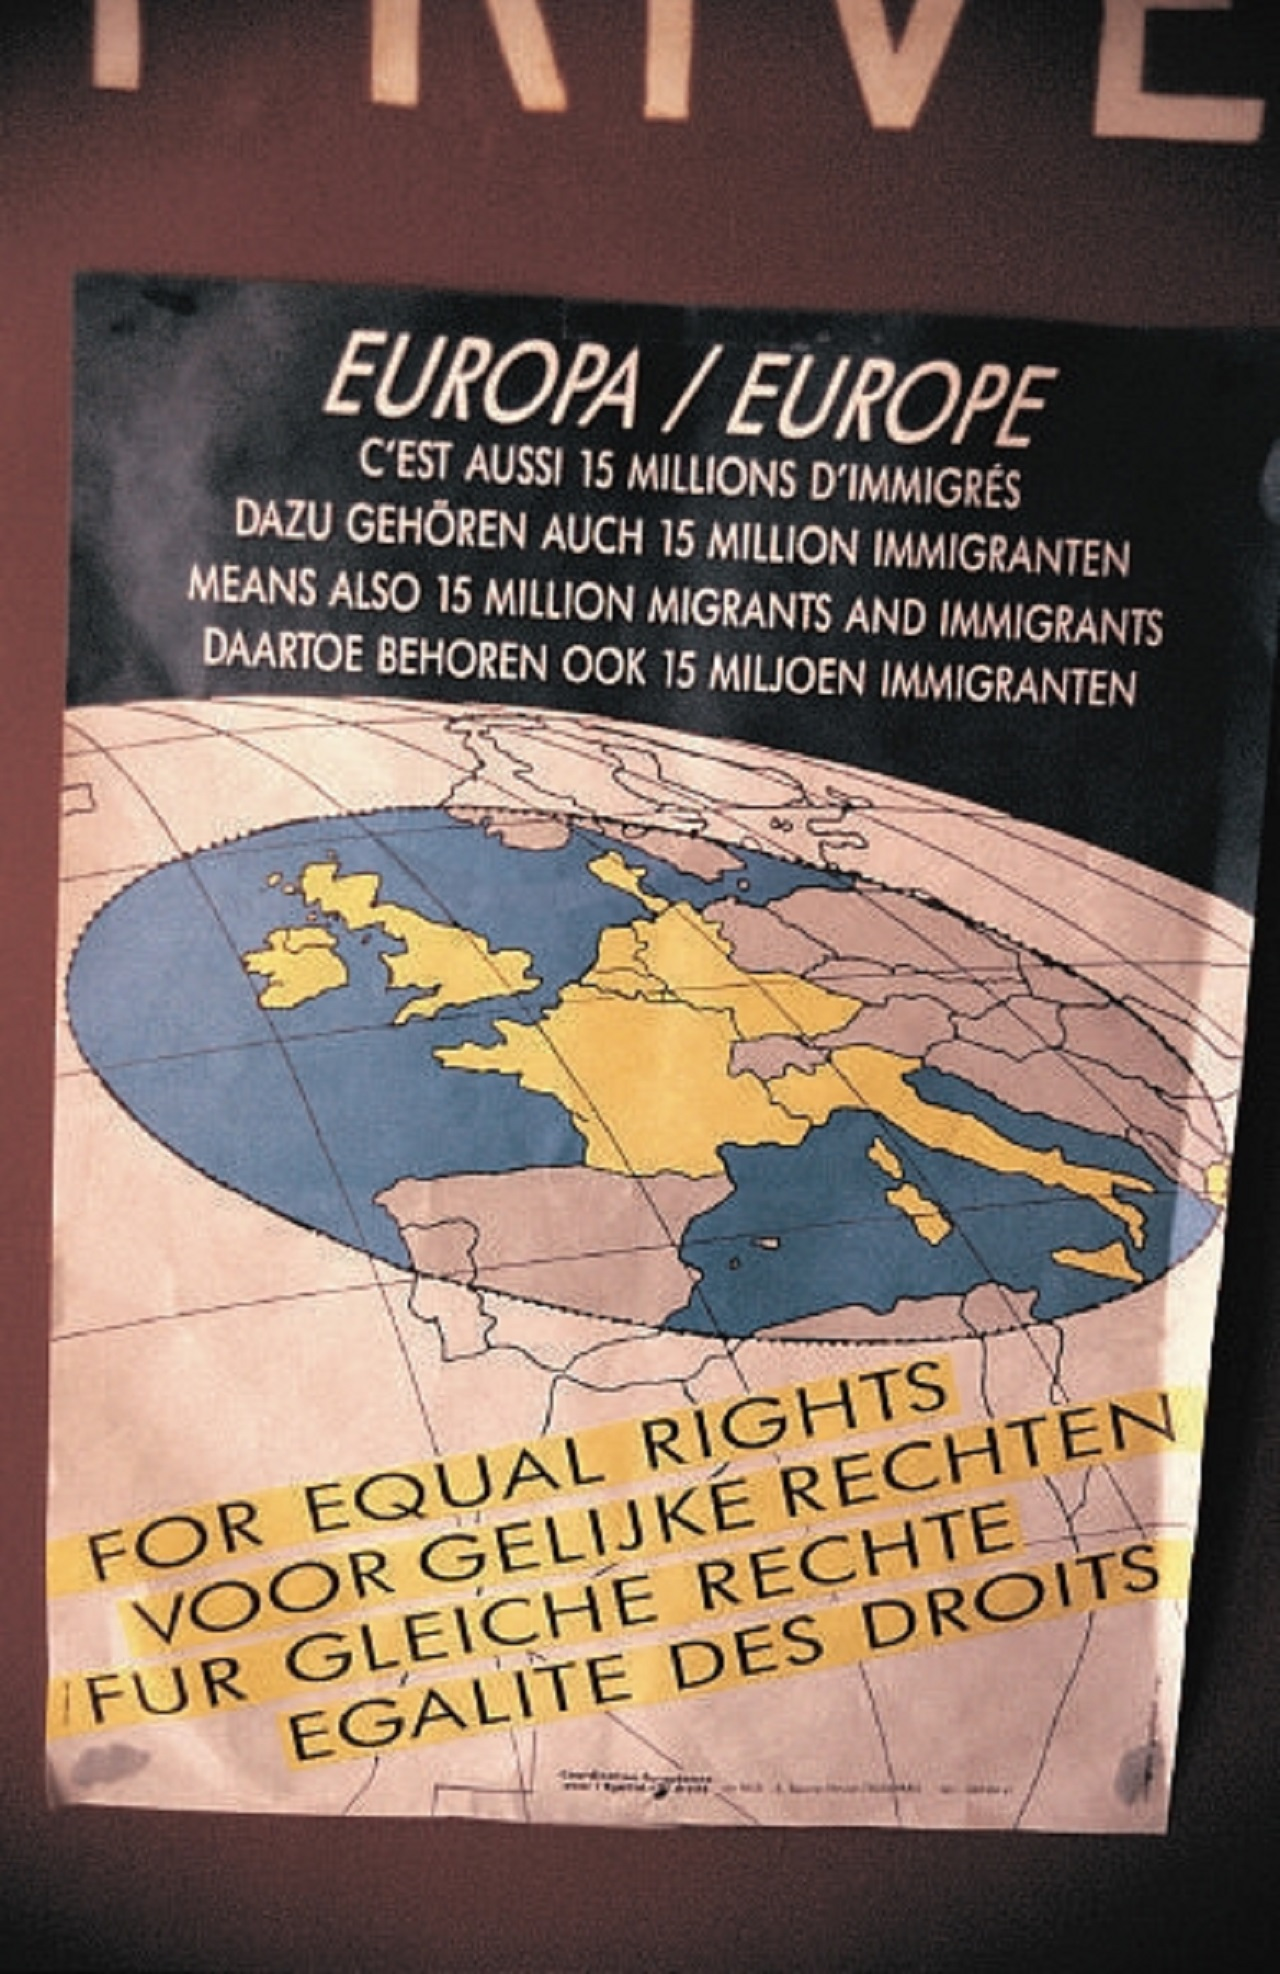 Poster about migrant rights europe